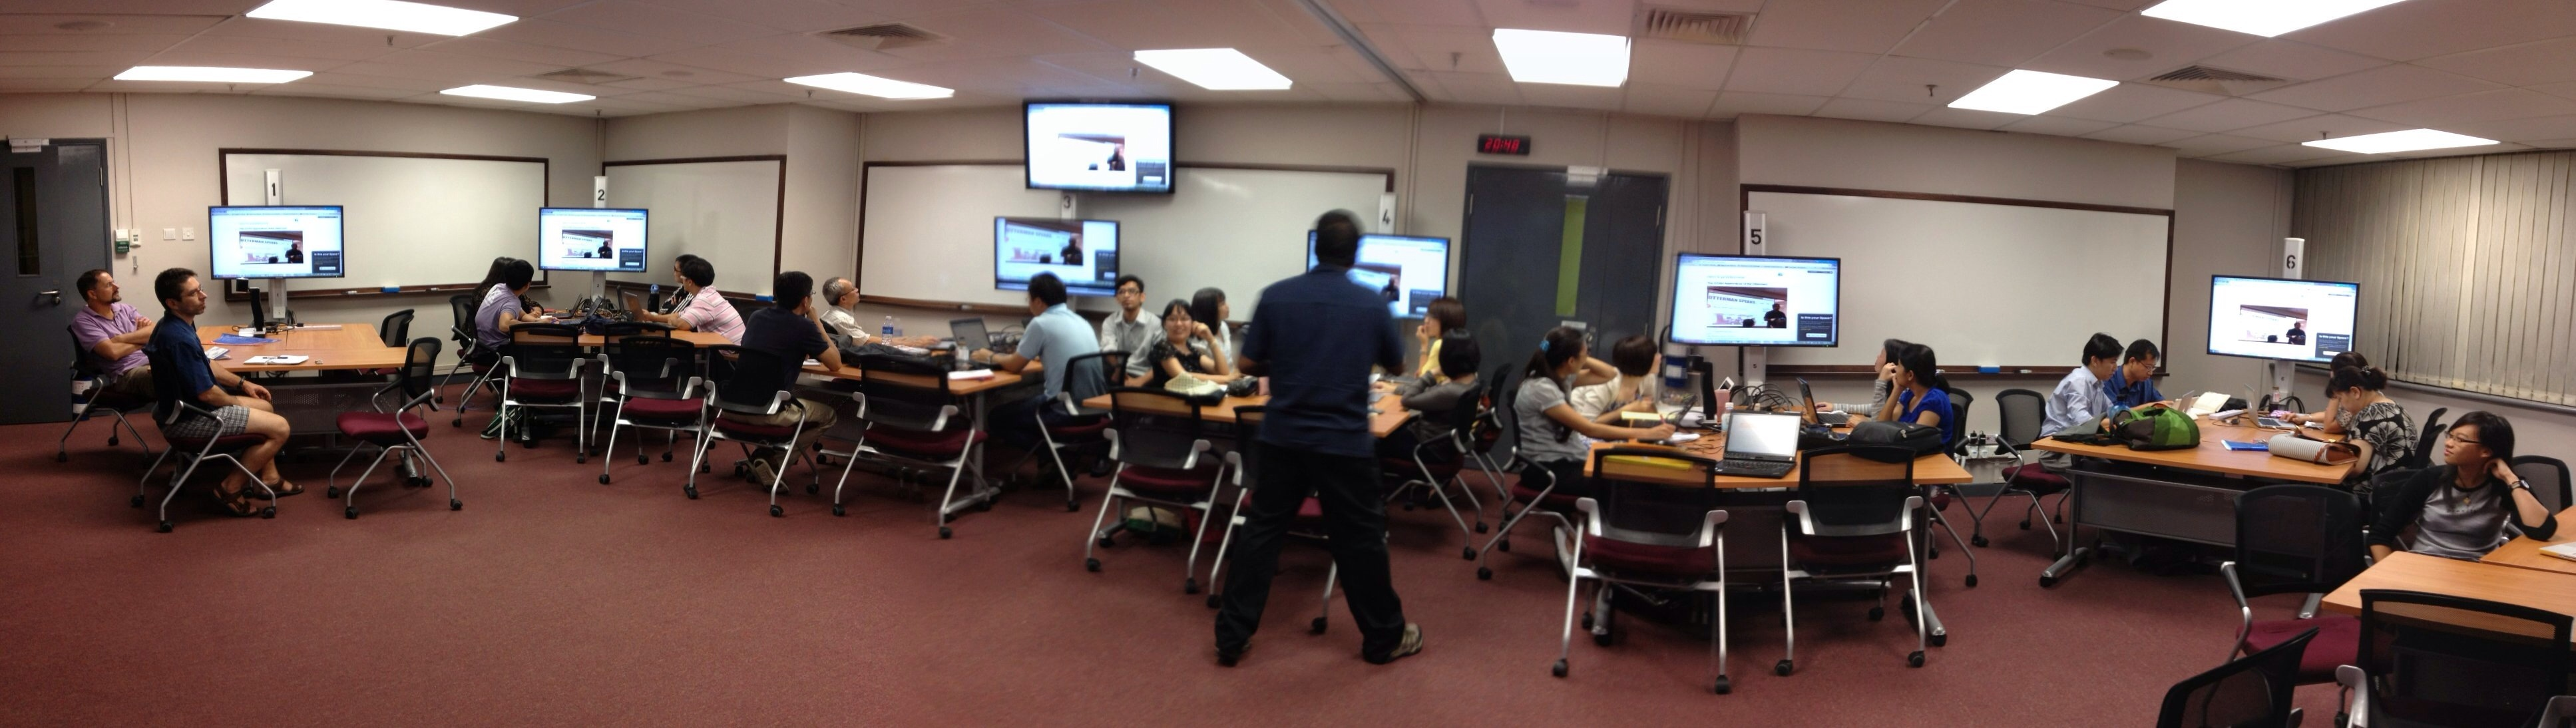 Image of Technology Enabled Active Learning (TEAL) classroom